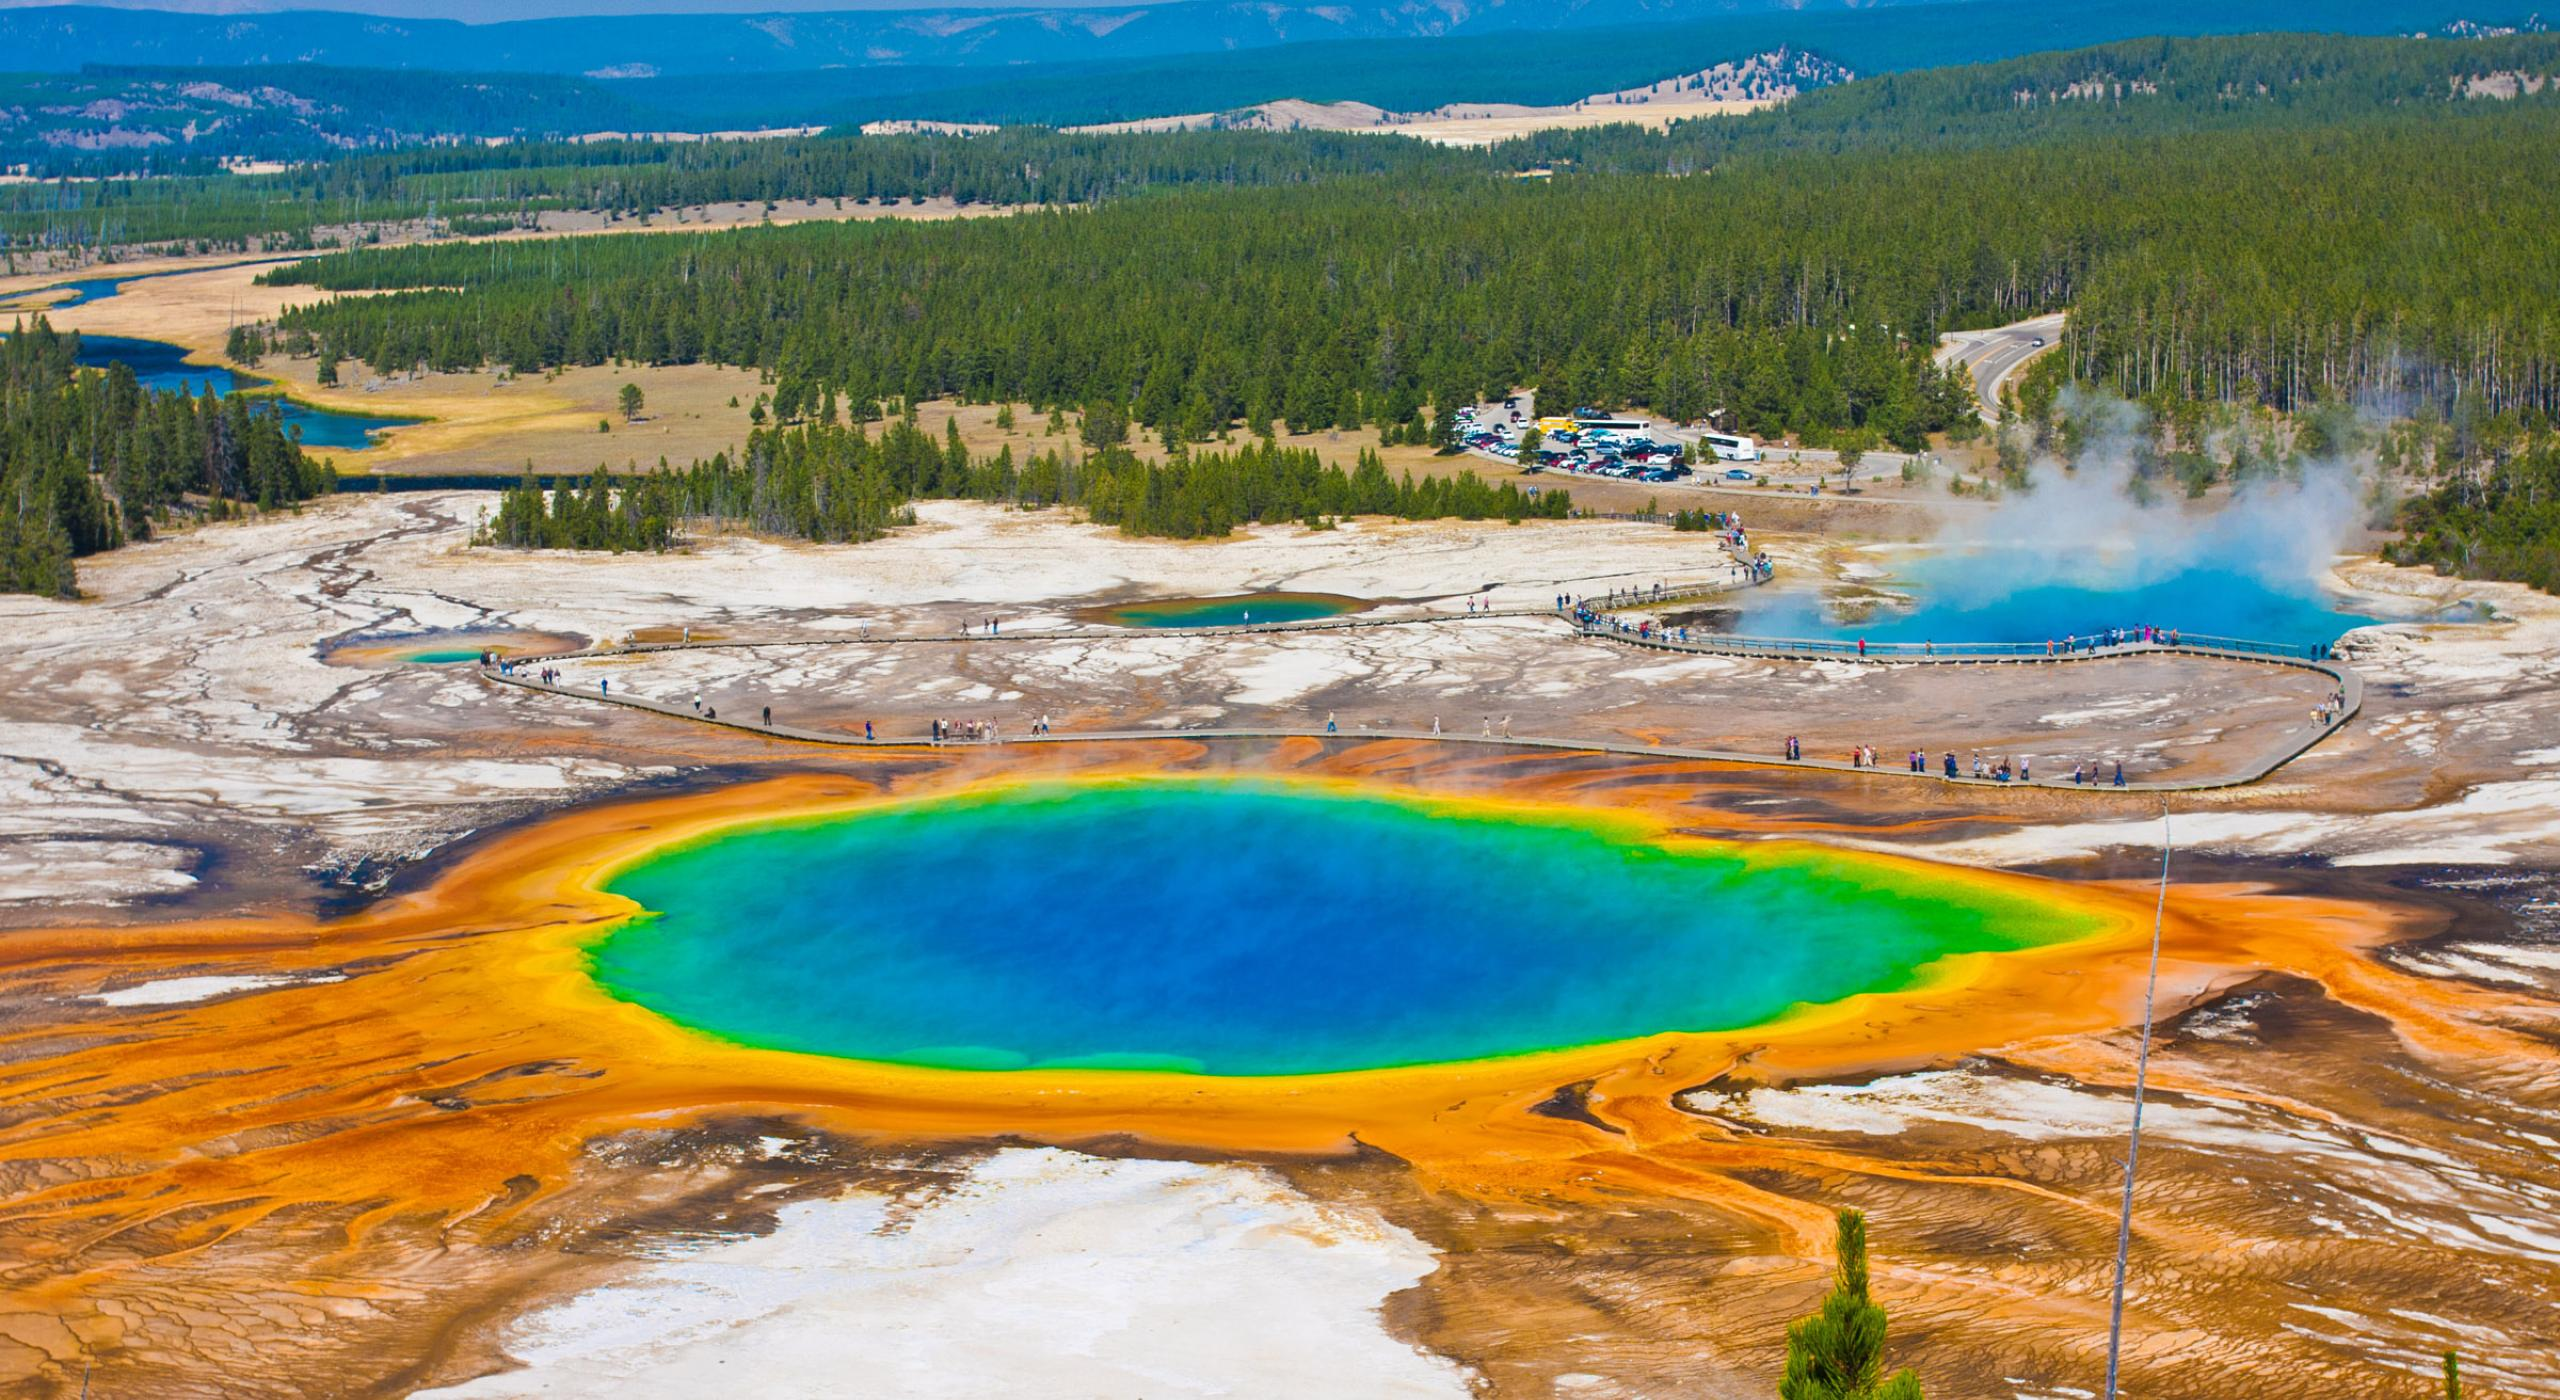 The Yellowstone Loop: 9 Stops You Must Make on an Epic Western Road Trip